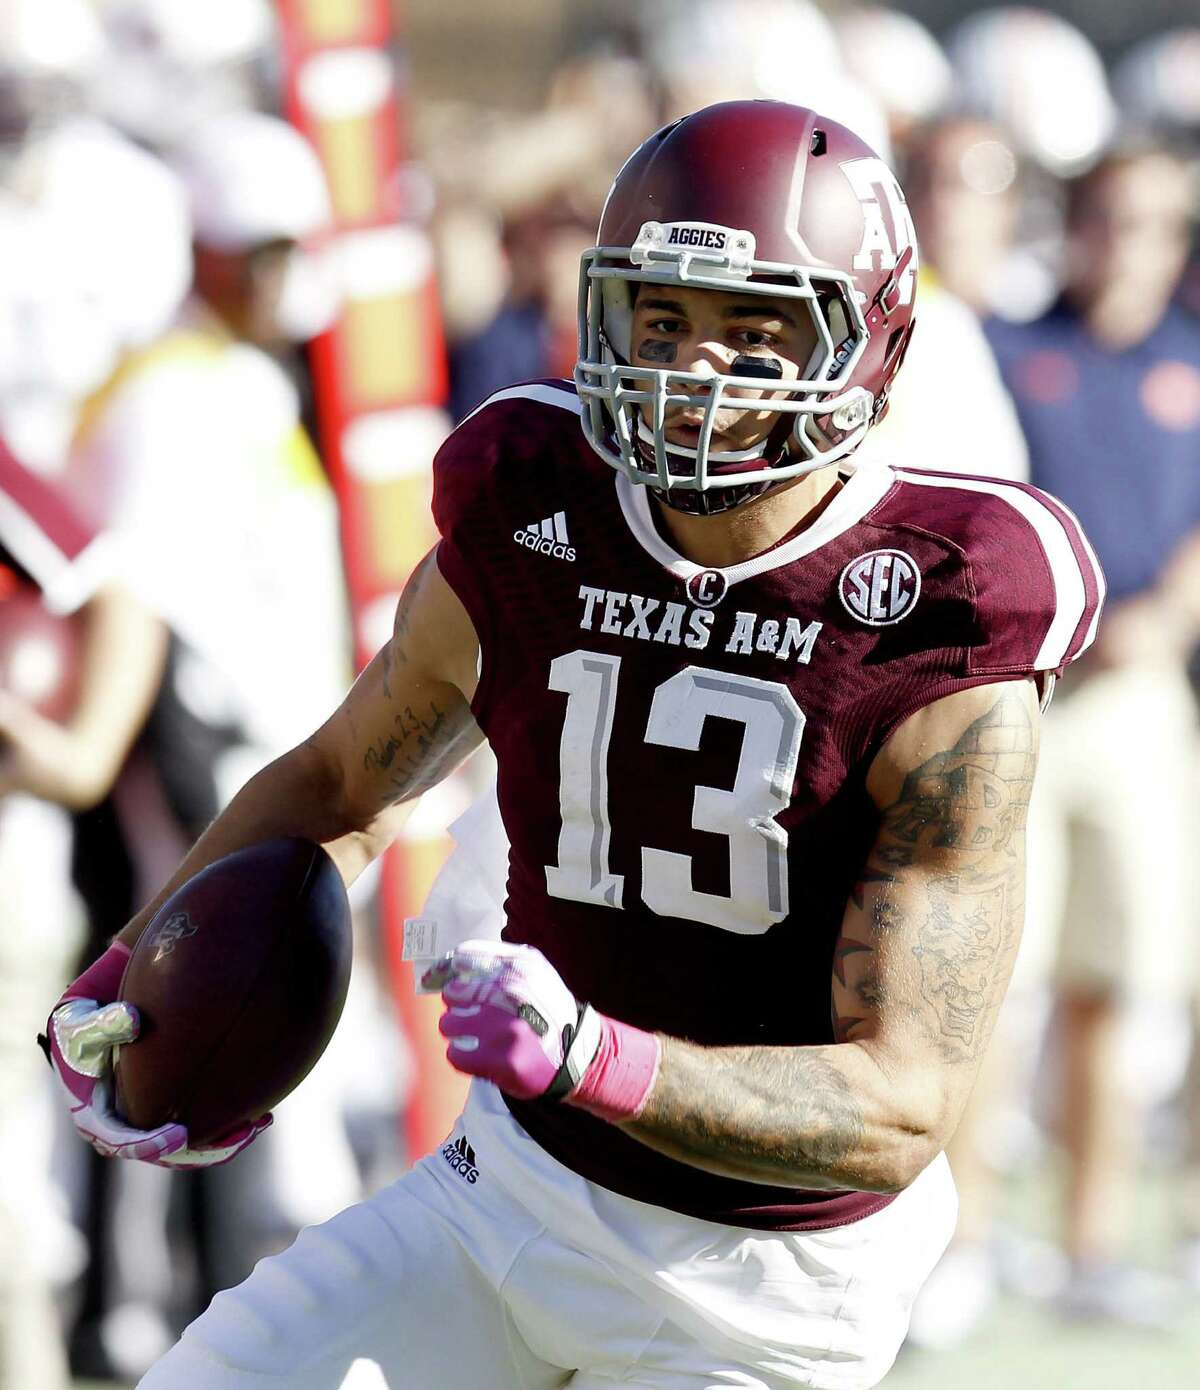 Texas A&M's Mike Evans said before the Aggies' bowl game that he was focused on his 17-month-old daughter, Mackenzie, and the Aggies' season.